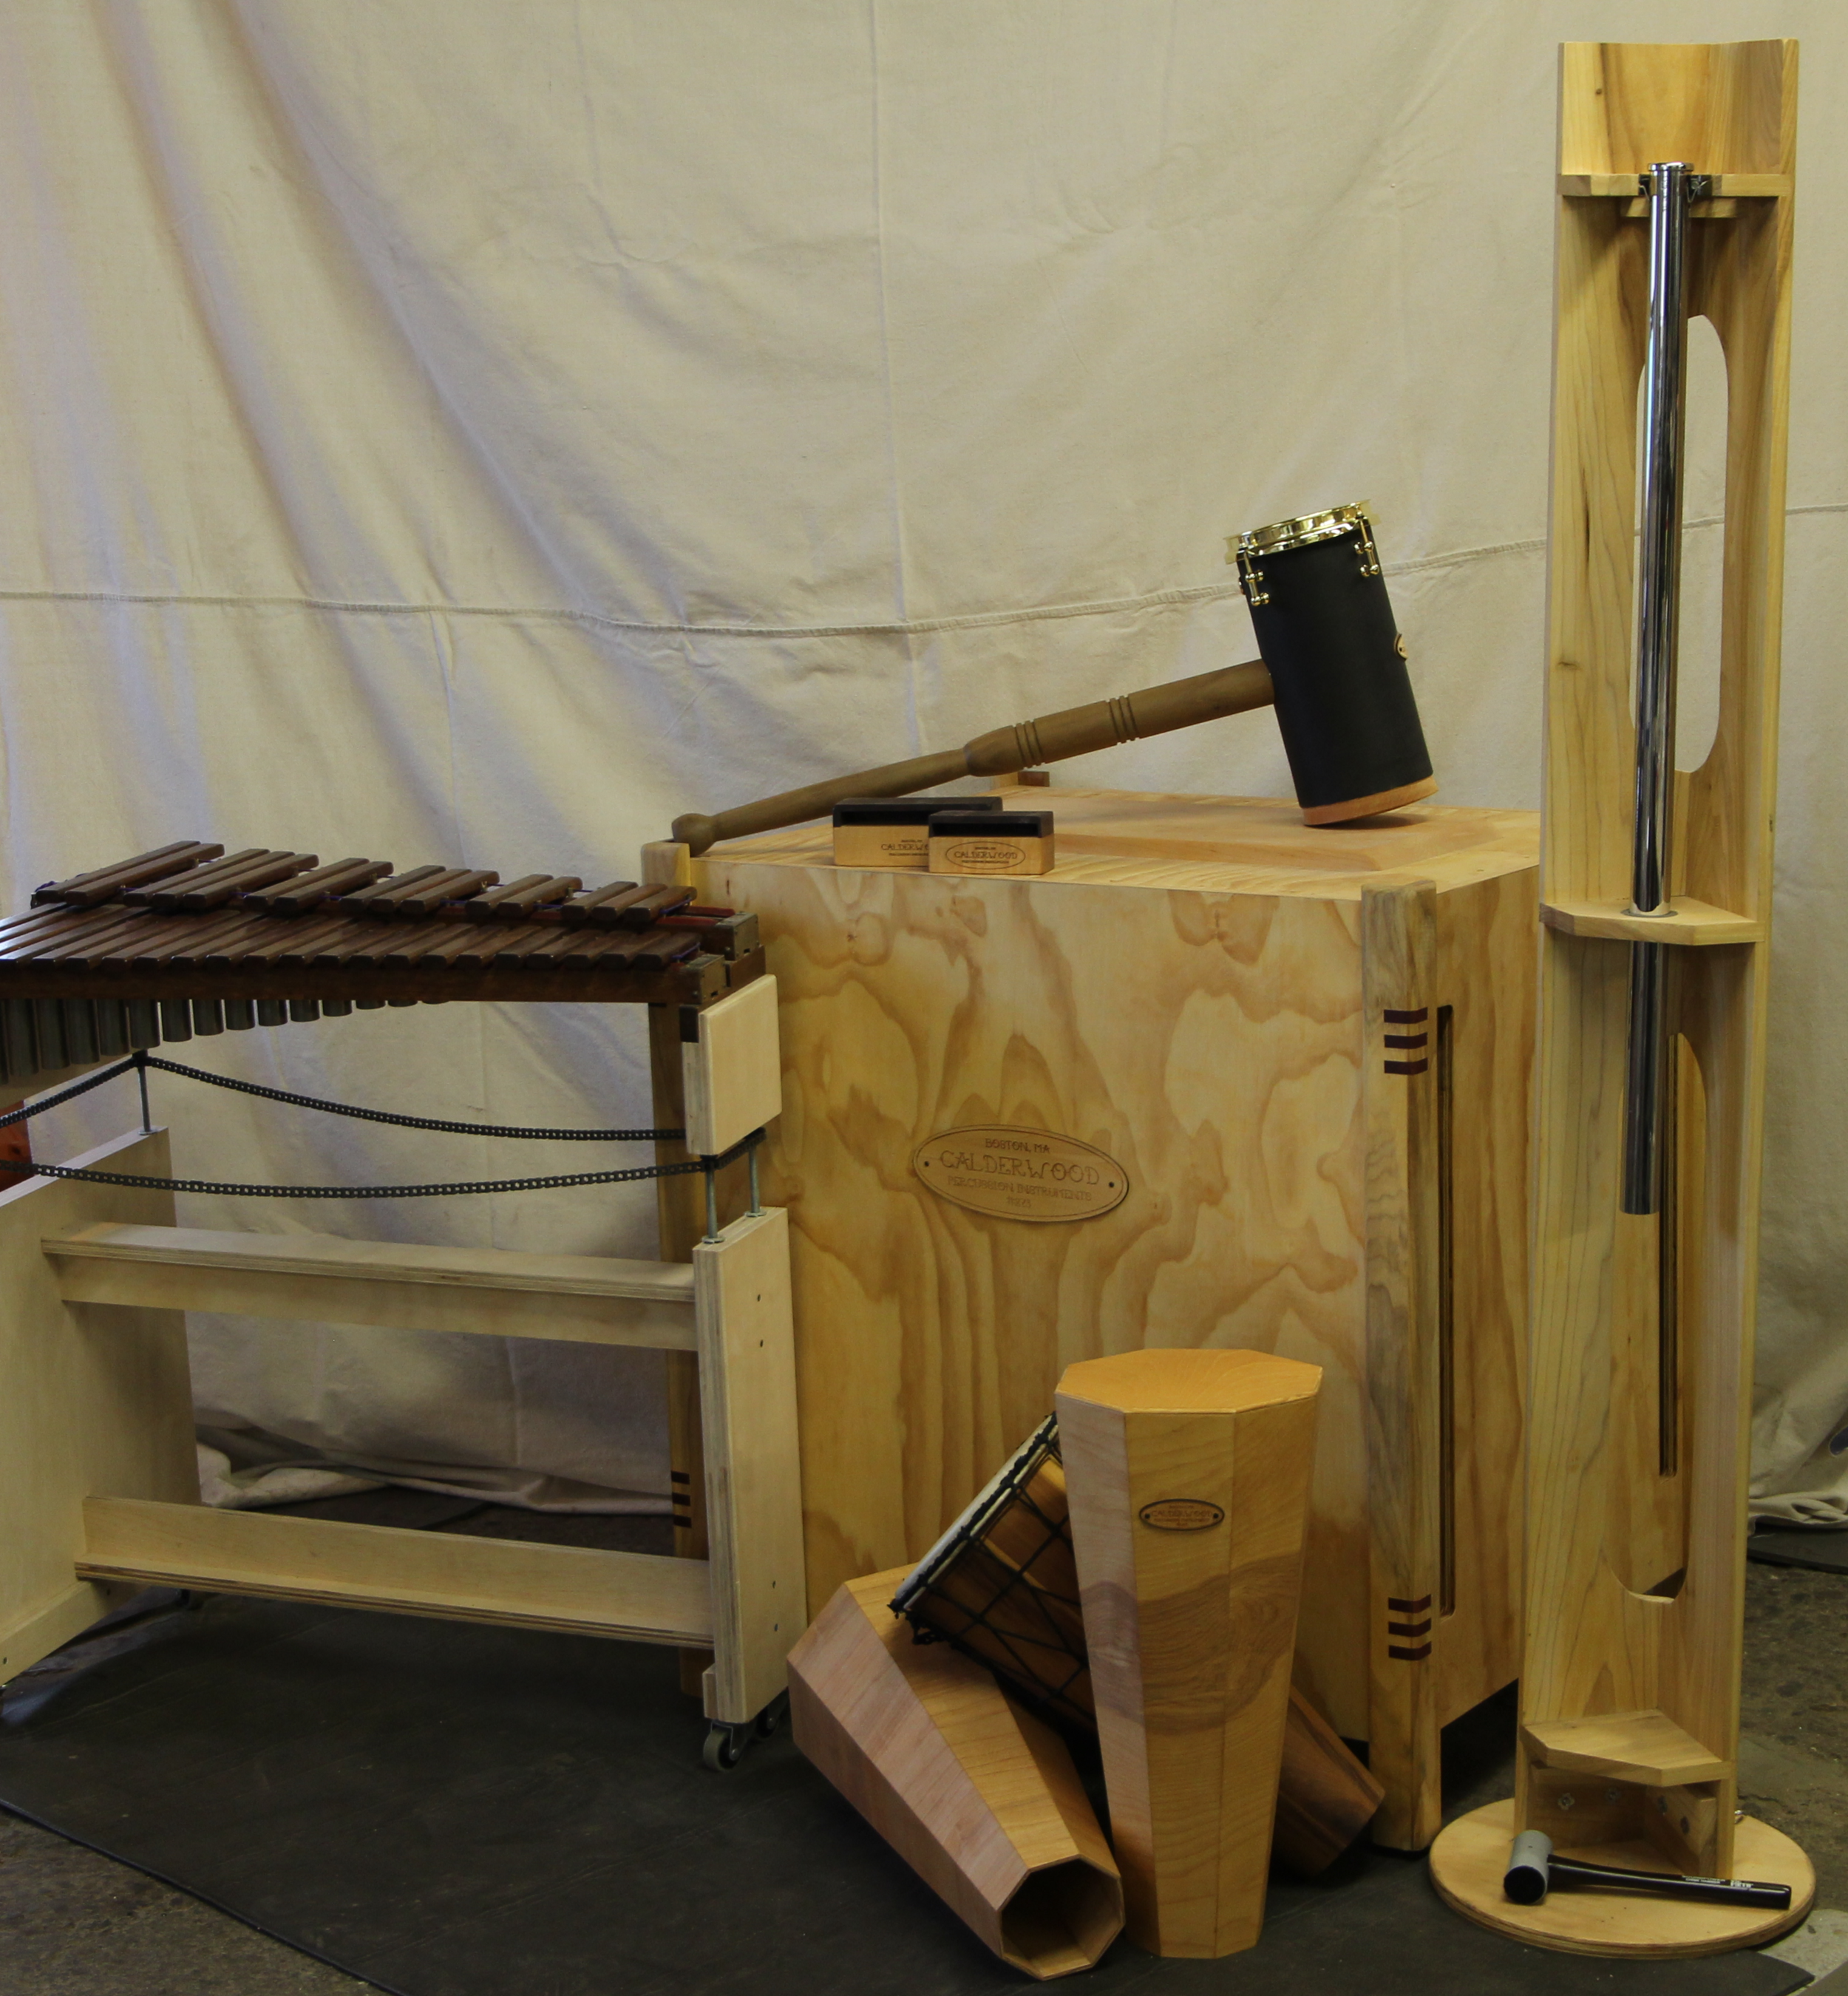 Concert percussion creations